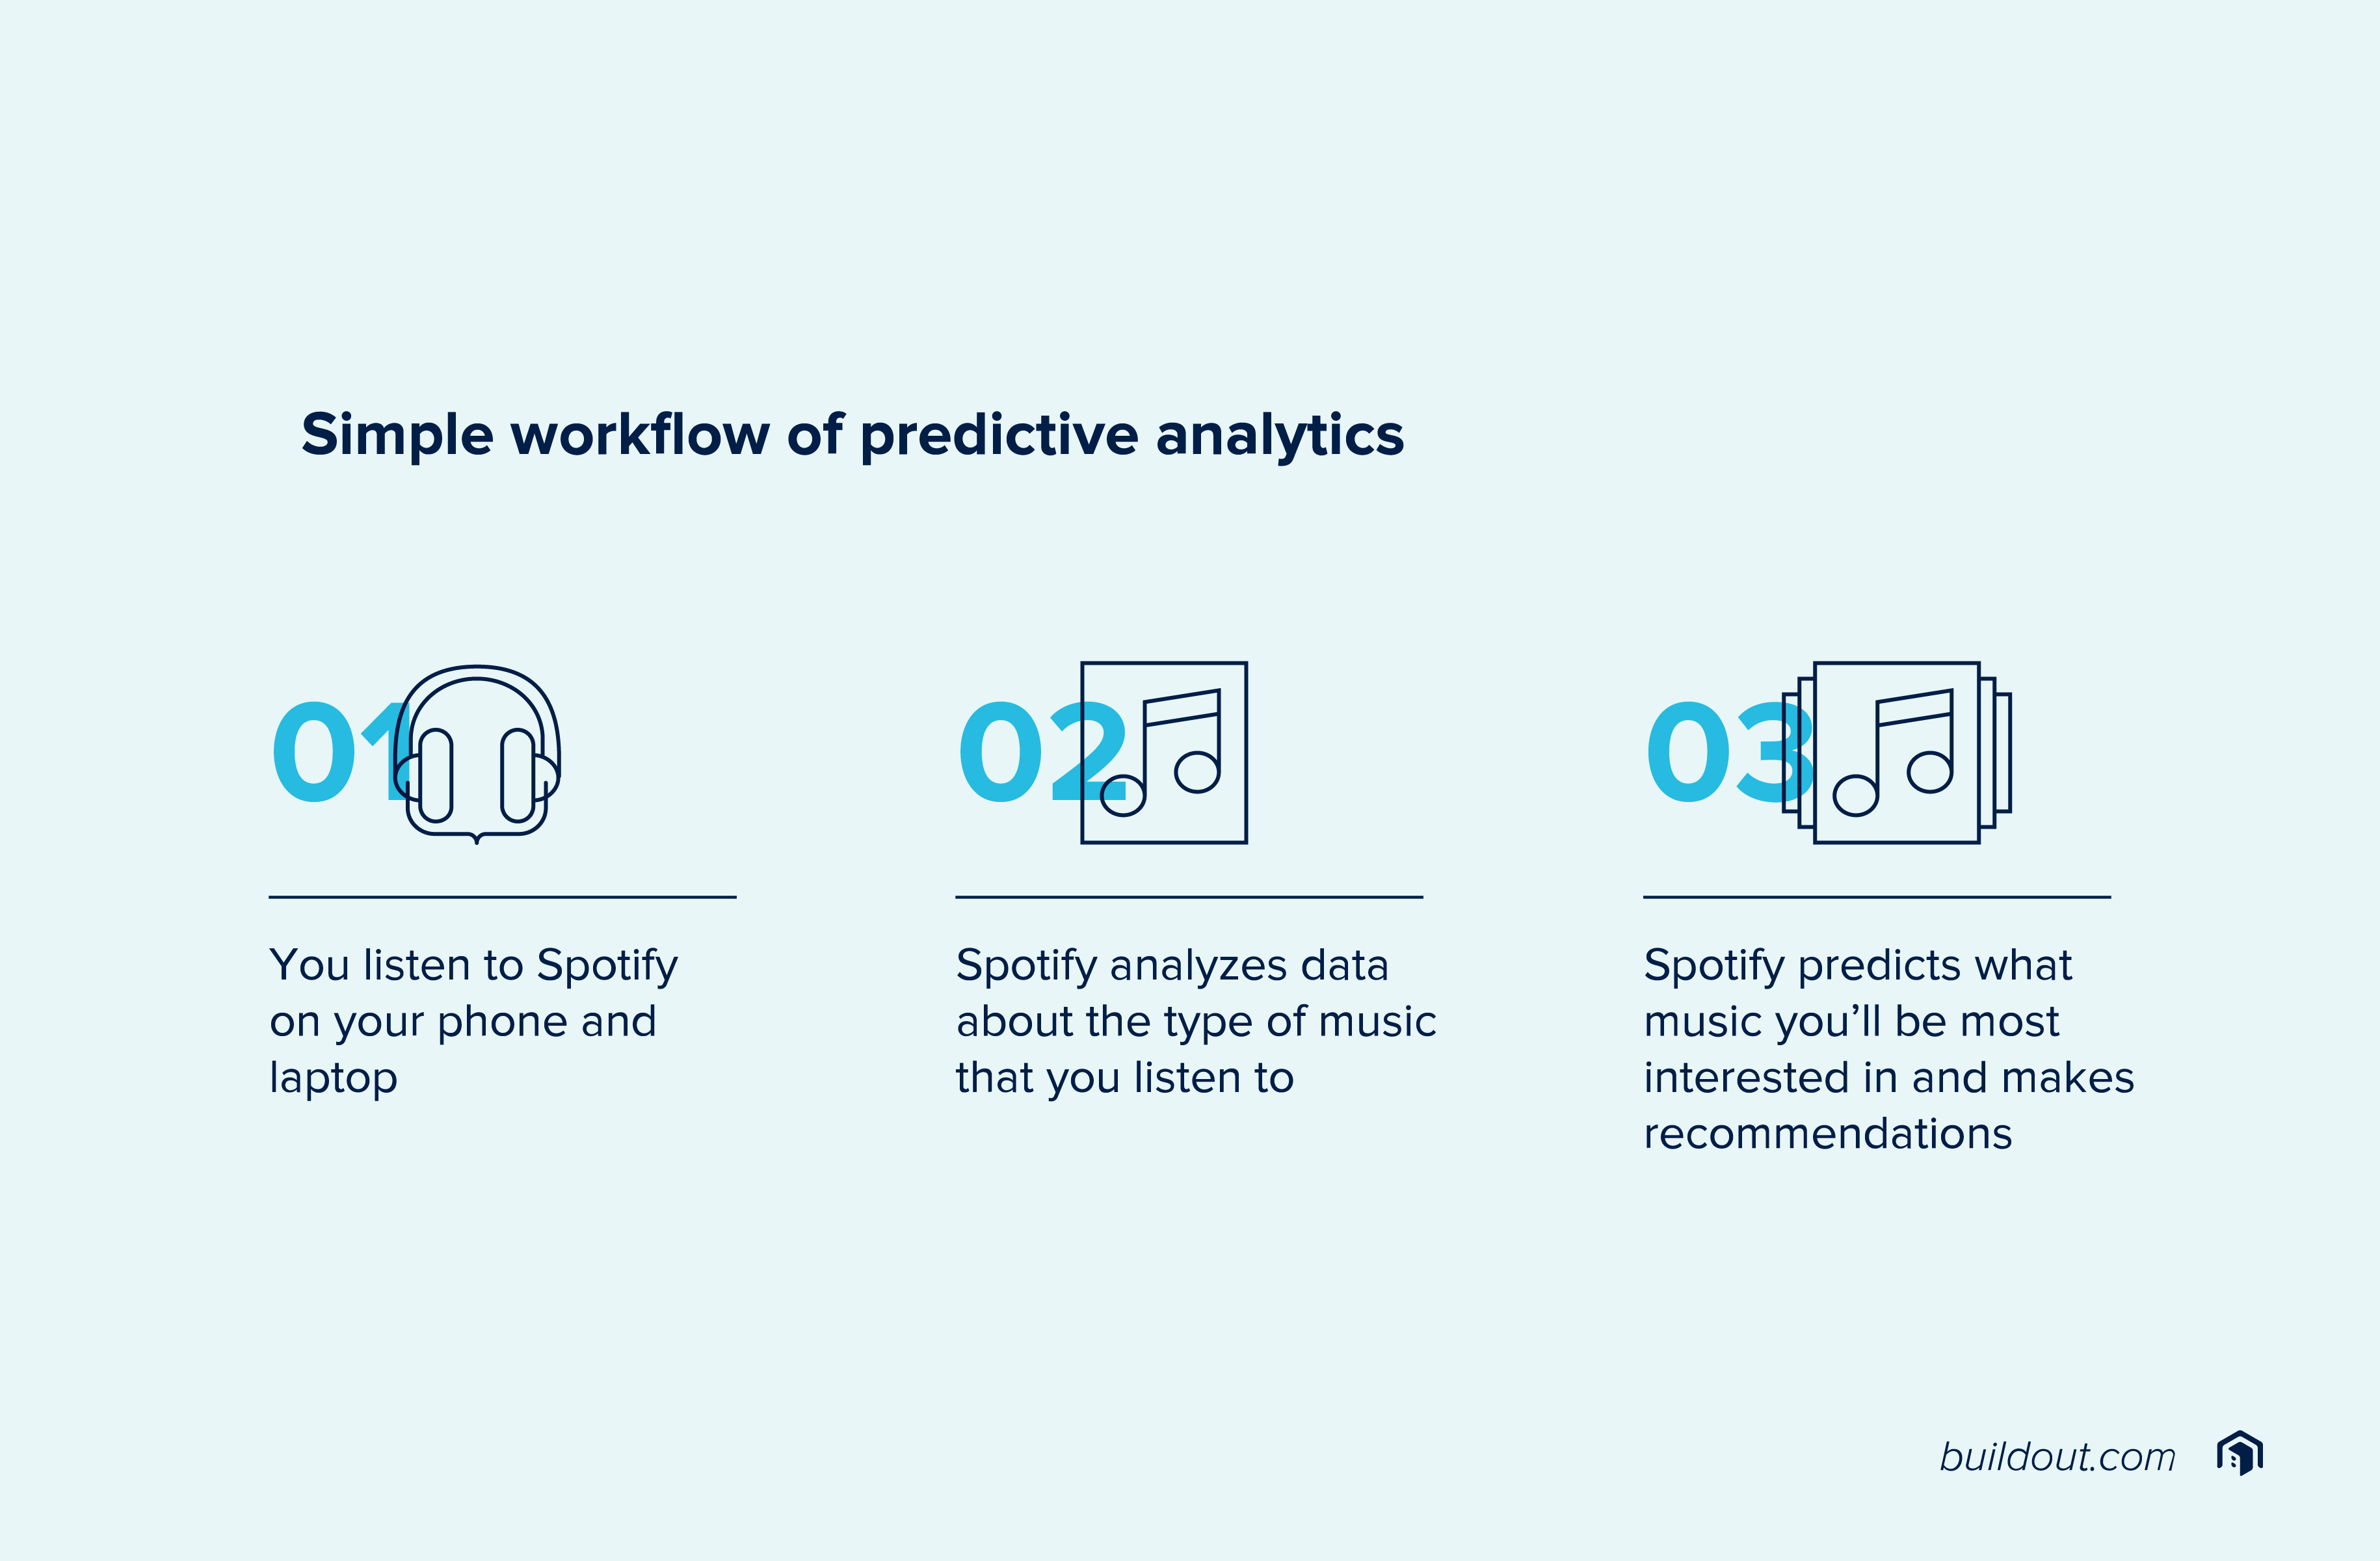 Simple workflow of predictive analytics